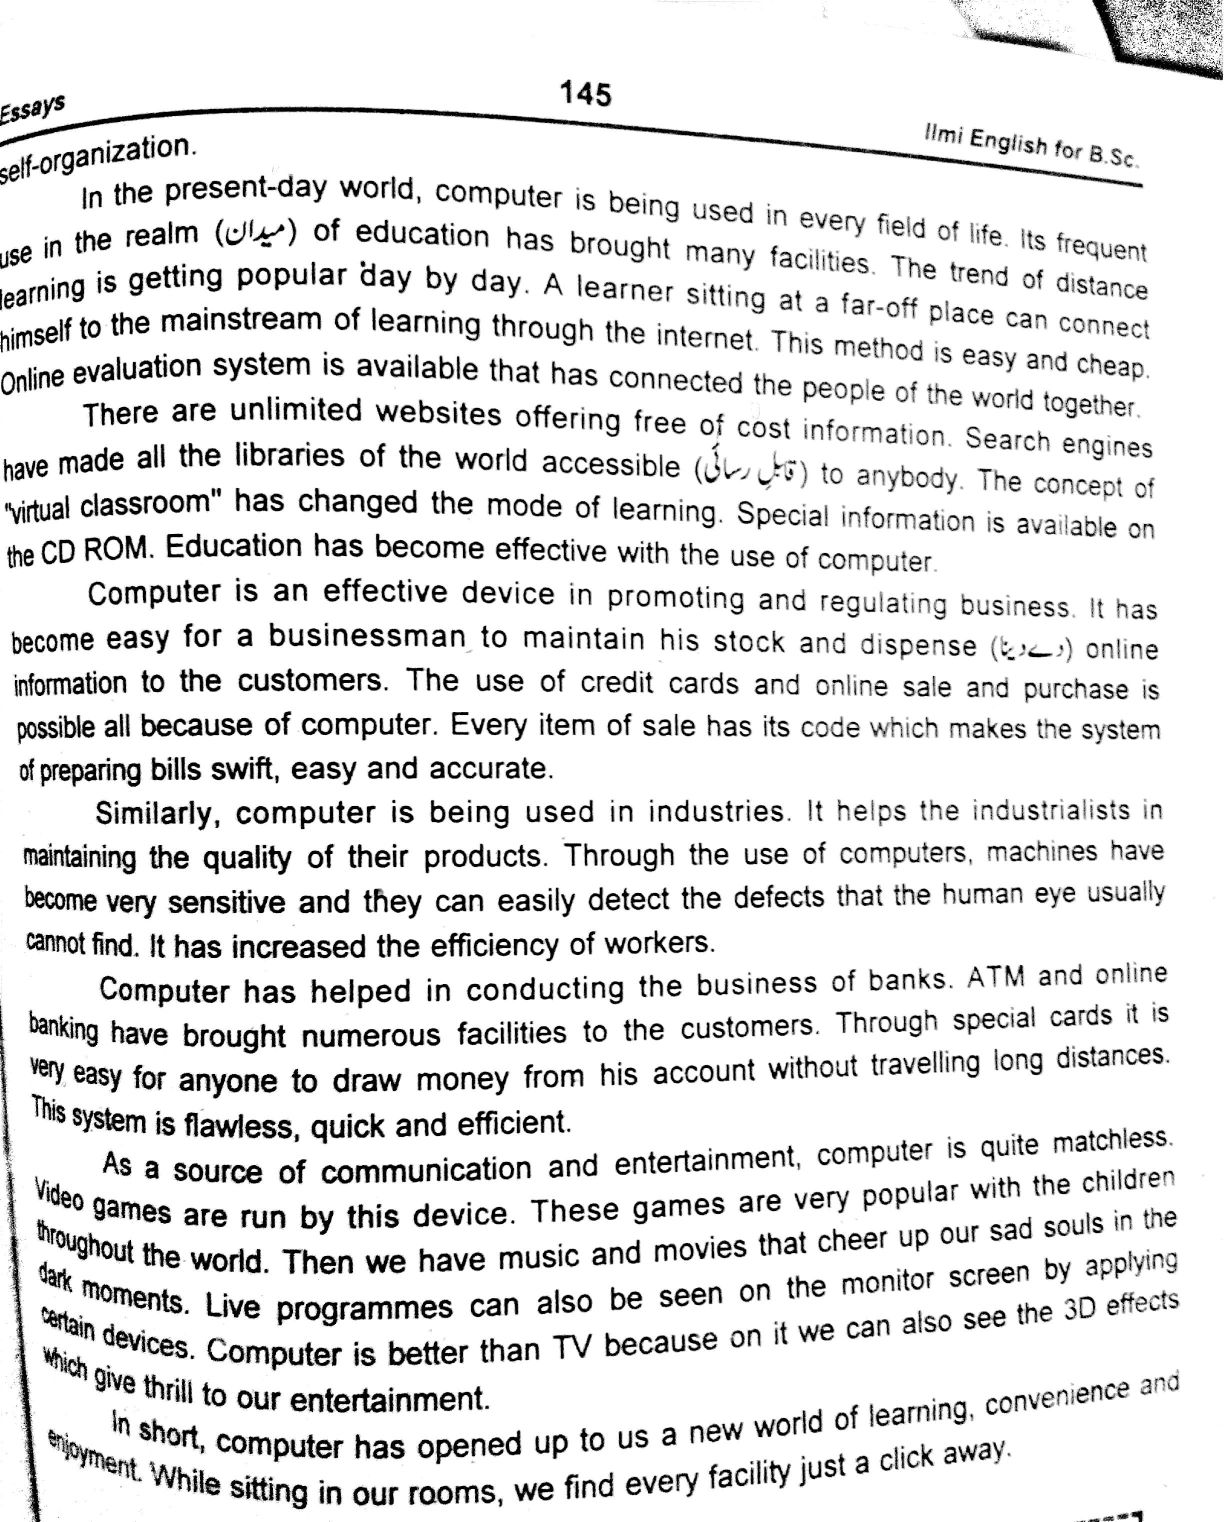 009 Tv Addiction Essay For Bsc Example Beautiful Full